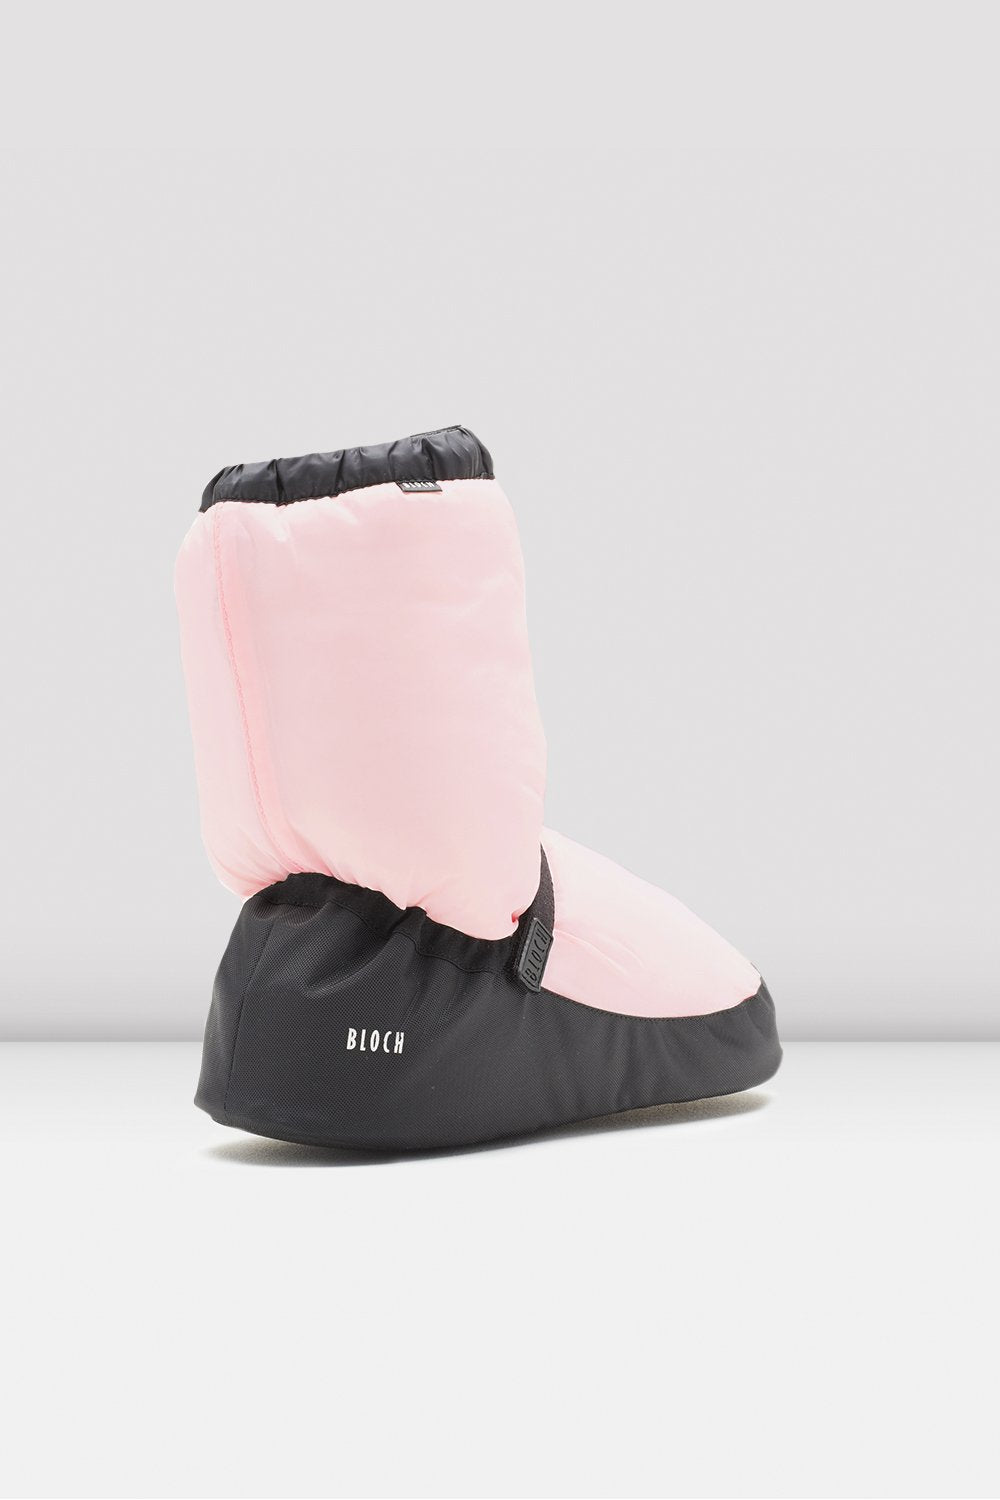 Candy pink nylon Bloch Adult Warm Up Booties single shoe side view focus on heel of shoe